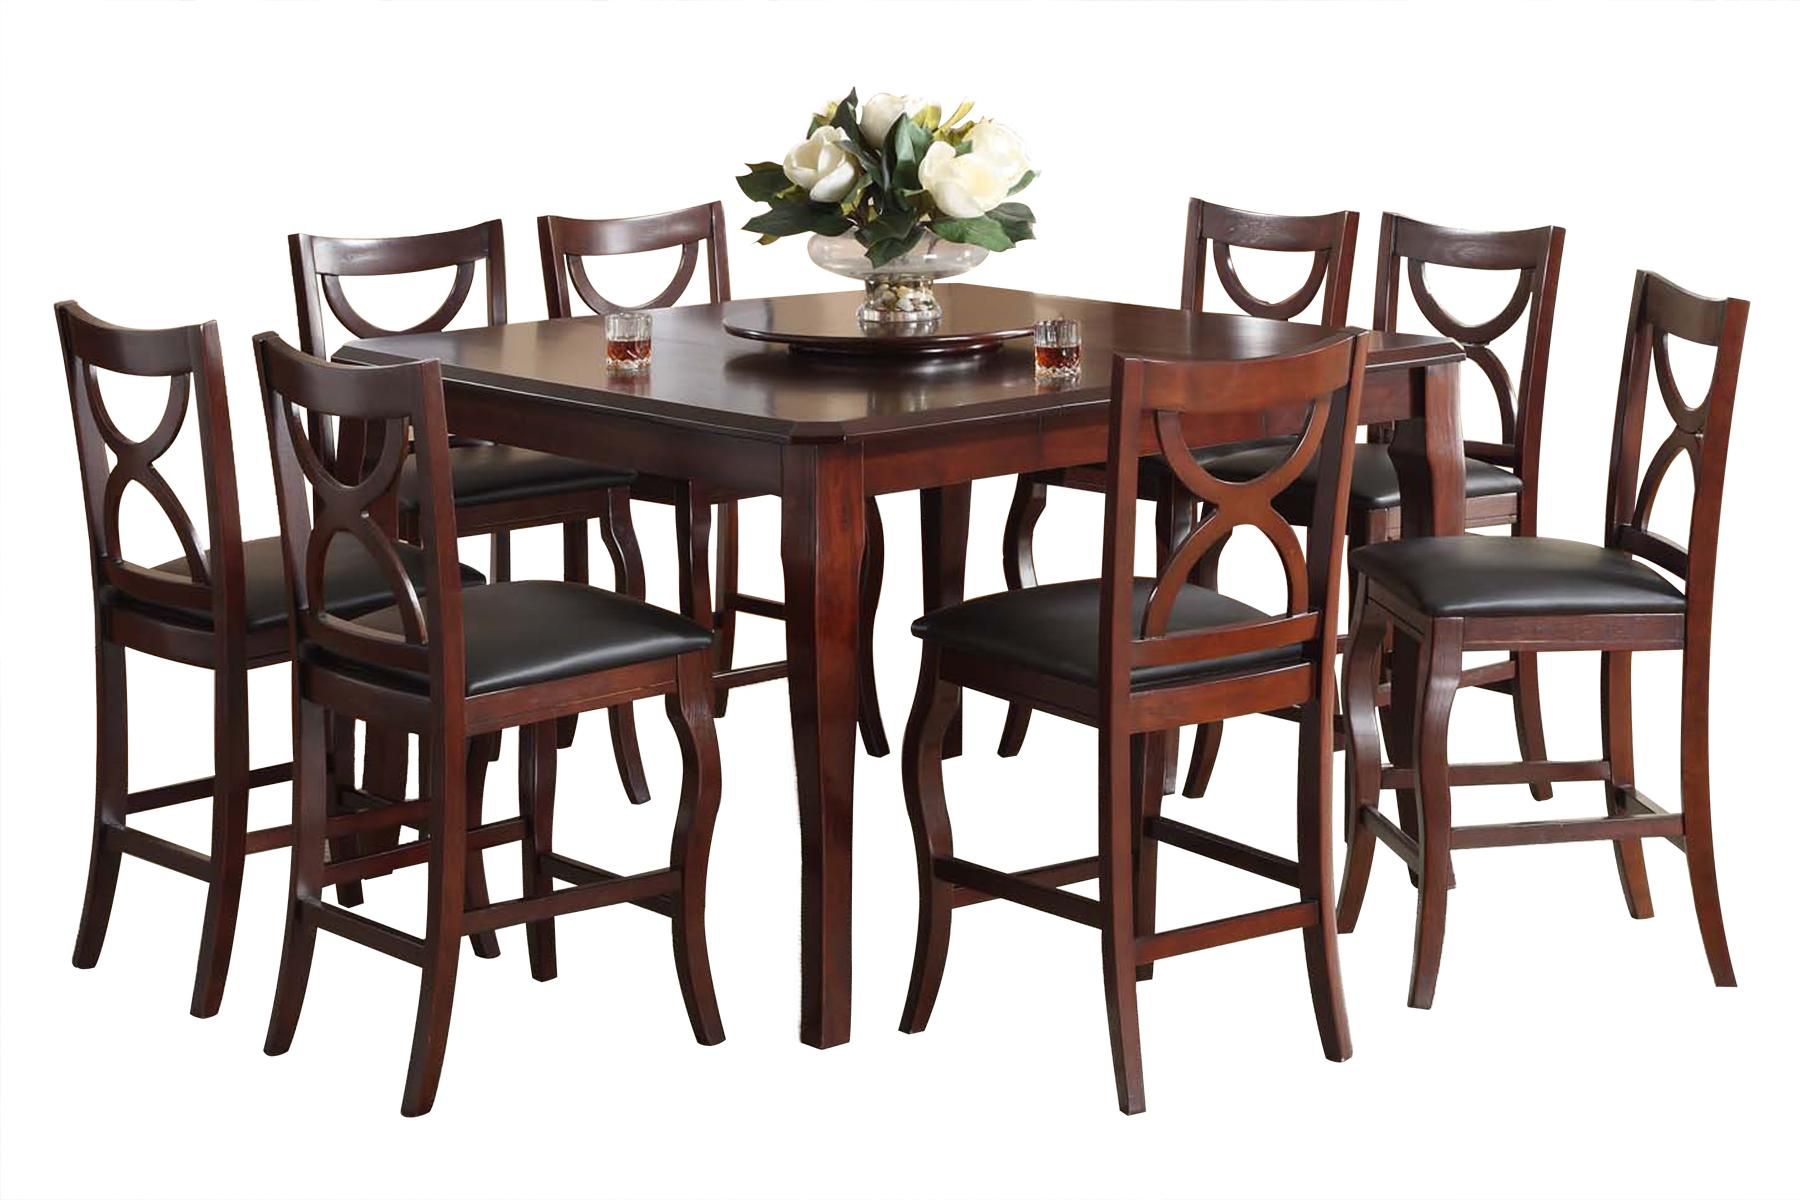 Counter Height Dining Table - Walmart.com